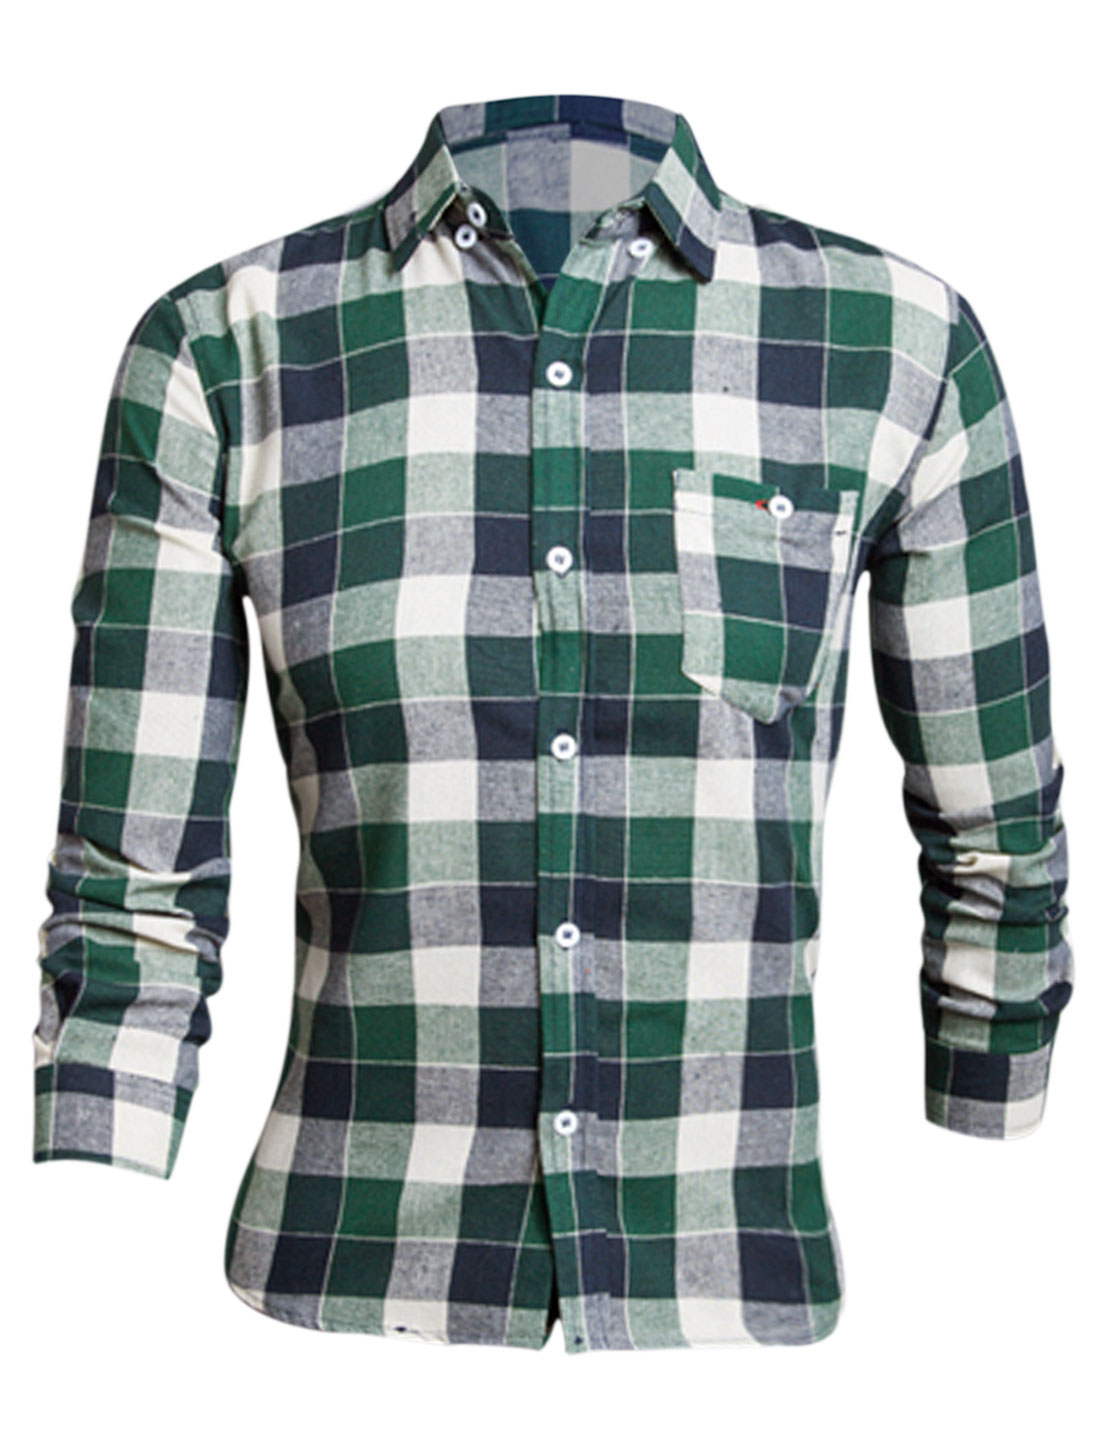 Men Dark Green Navy Blue Printed Plaids Bust Pocket Button Closure Shirt M